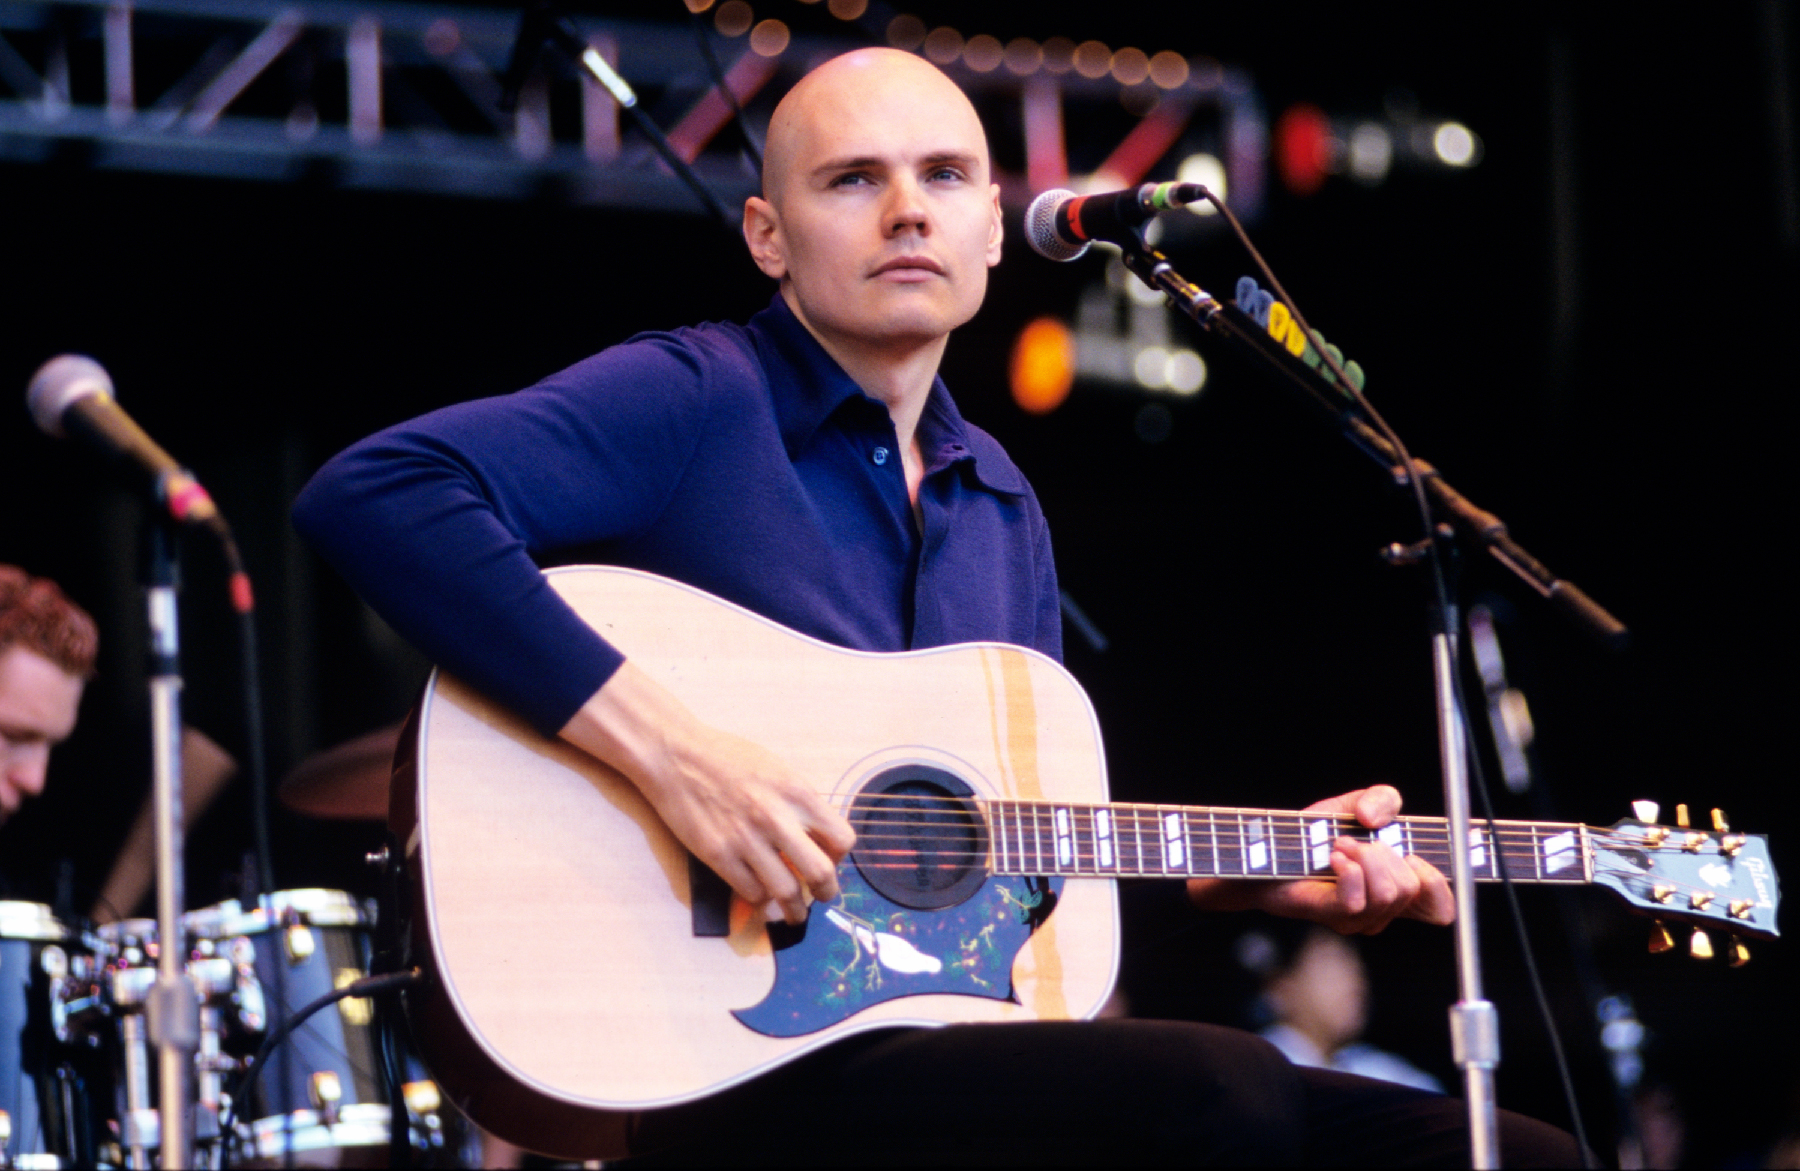 Smashing Pumpkins Reissue 'Adore' With Three Discs of Unreleased Music